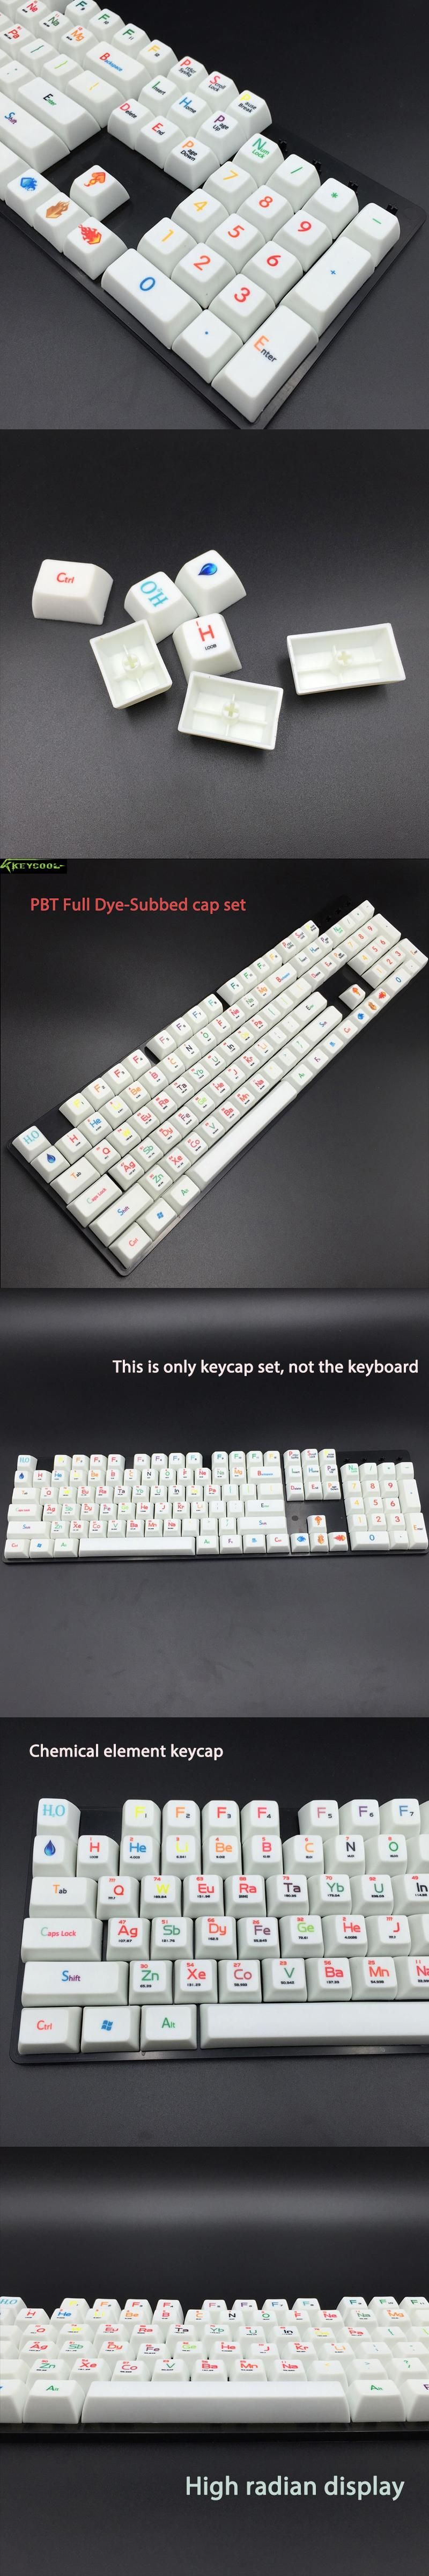 Periodic table sa full dyesubbed keycaps set pbt thick 16 pbt periodic table sa full dyesubbed keycaps set pbt thick 16 pbt keycap for diy cool urtaz Image collections